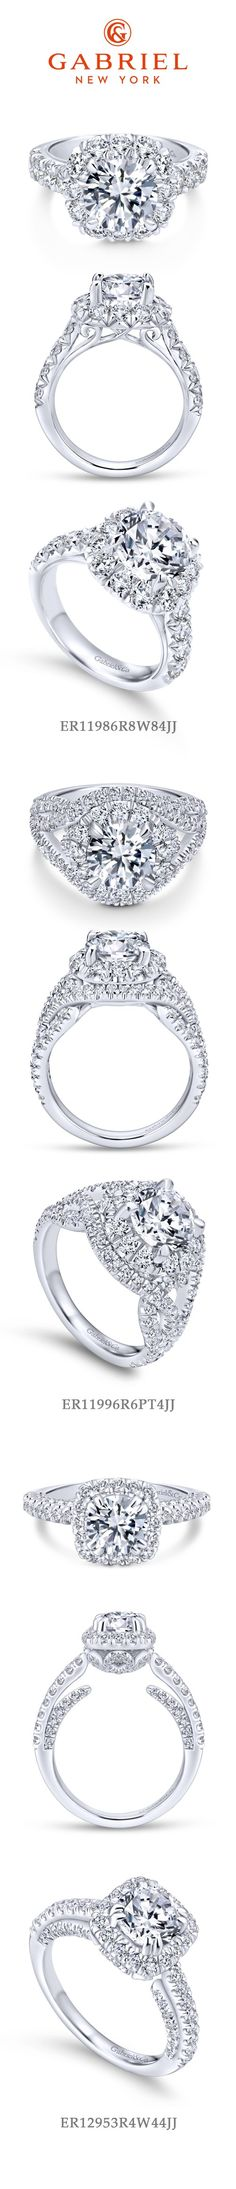 Gabriel NY - Preferred Fine Jewelry and Bridal Brand. Check out our Top 3 Pear Shaped Engagement Rings. Featuring a 3 stones engagement ring, solitaire, and white gold halo wedding ring. Pear Shaped Engagement Rings, Engagement Ring Shapes, Diamond Engagement Rings, Beautiful Wedding Rings, Princess Cut Rings, Or Rose, Rose Gold, Wedding Ring Bands, Swagg